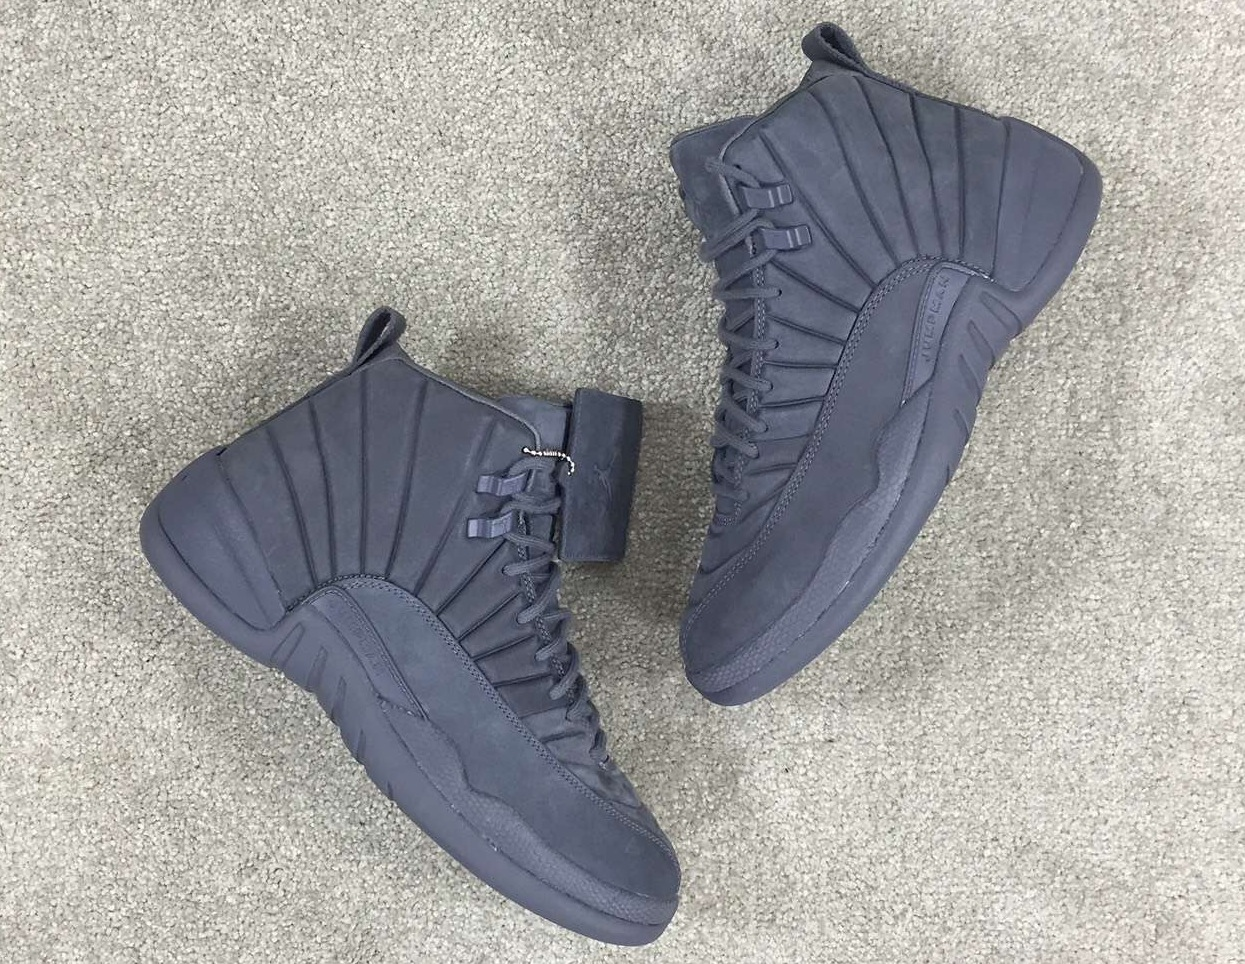 Public School PSNY Air Jordan 12 Dark Grey Black